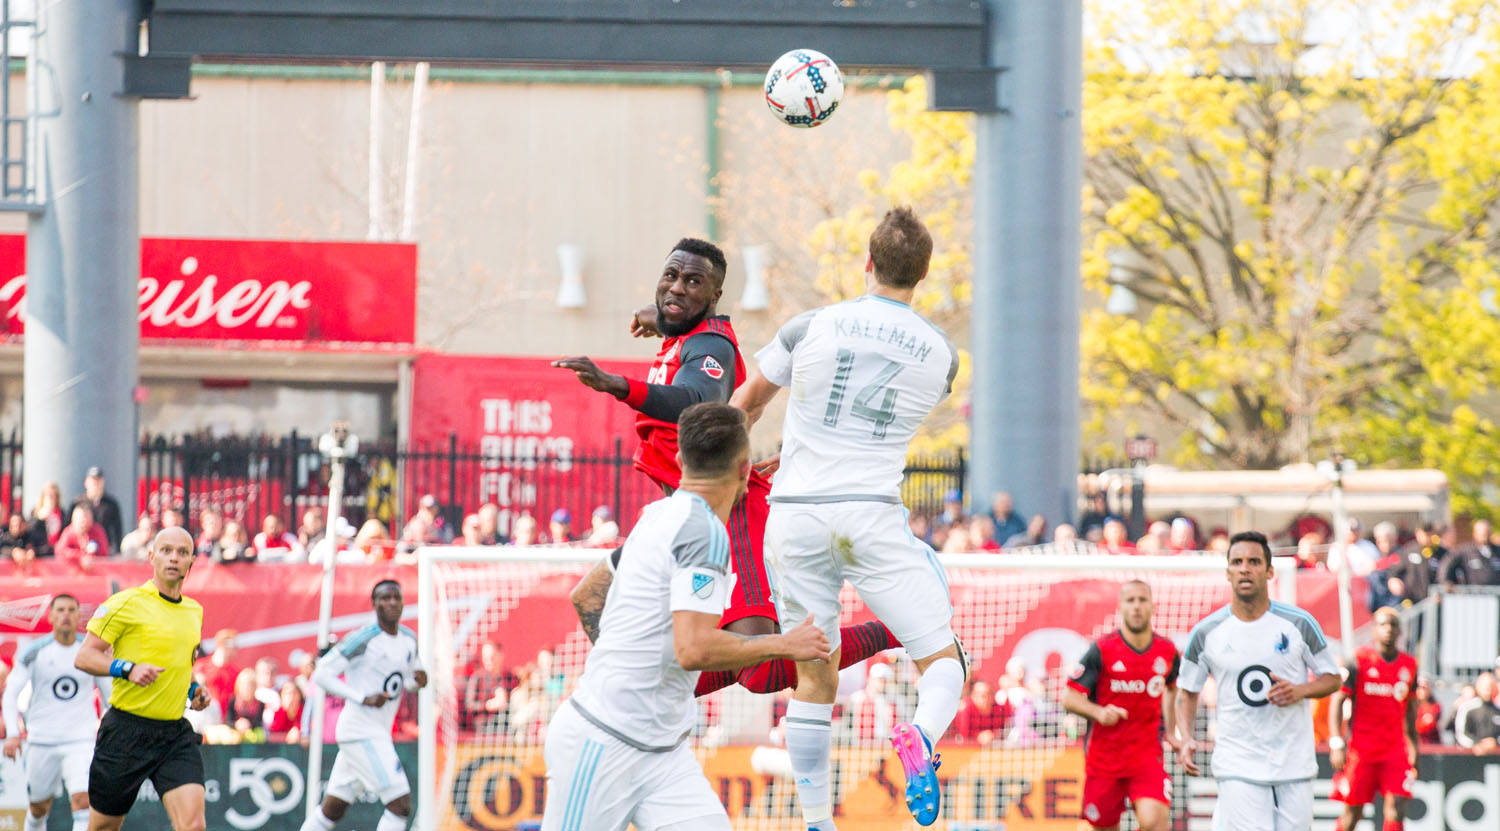 Jozy Altidore and Brent Kallmam go into the air for a header.Image by Dennis Marciniak of denMAR Media.